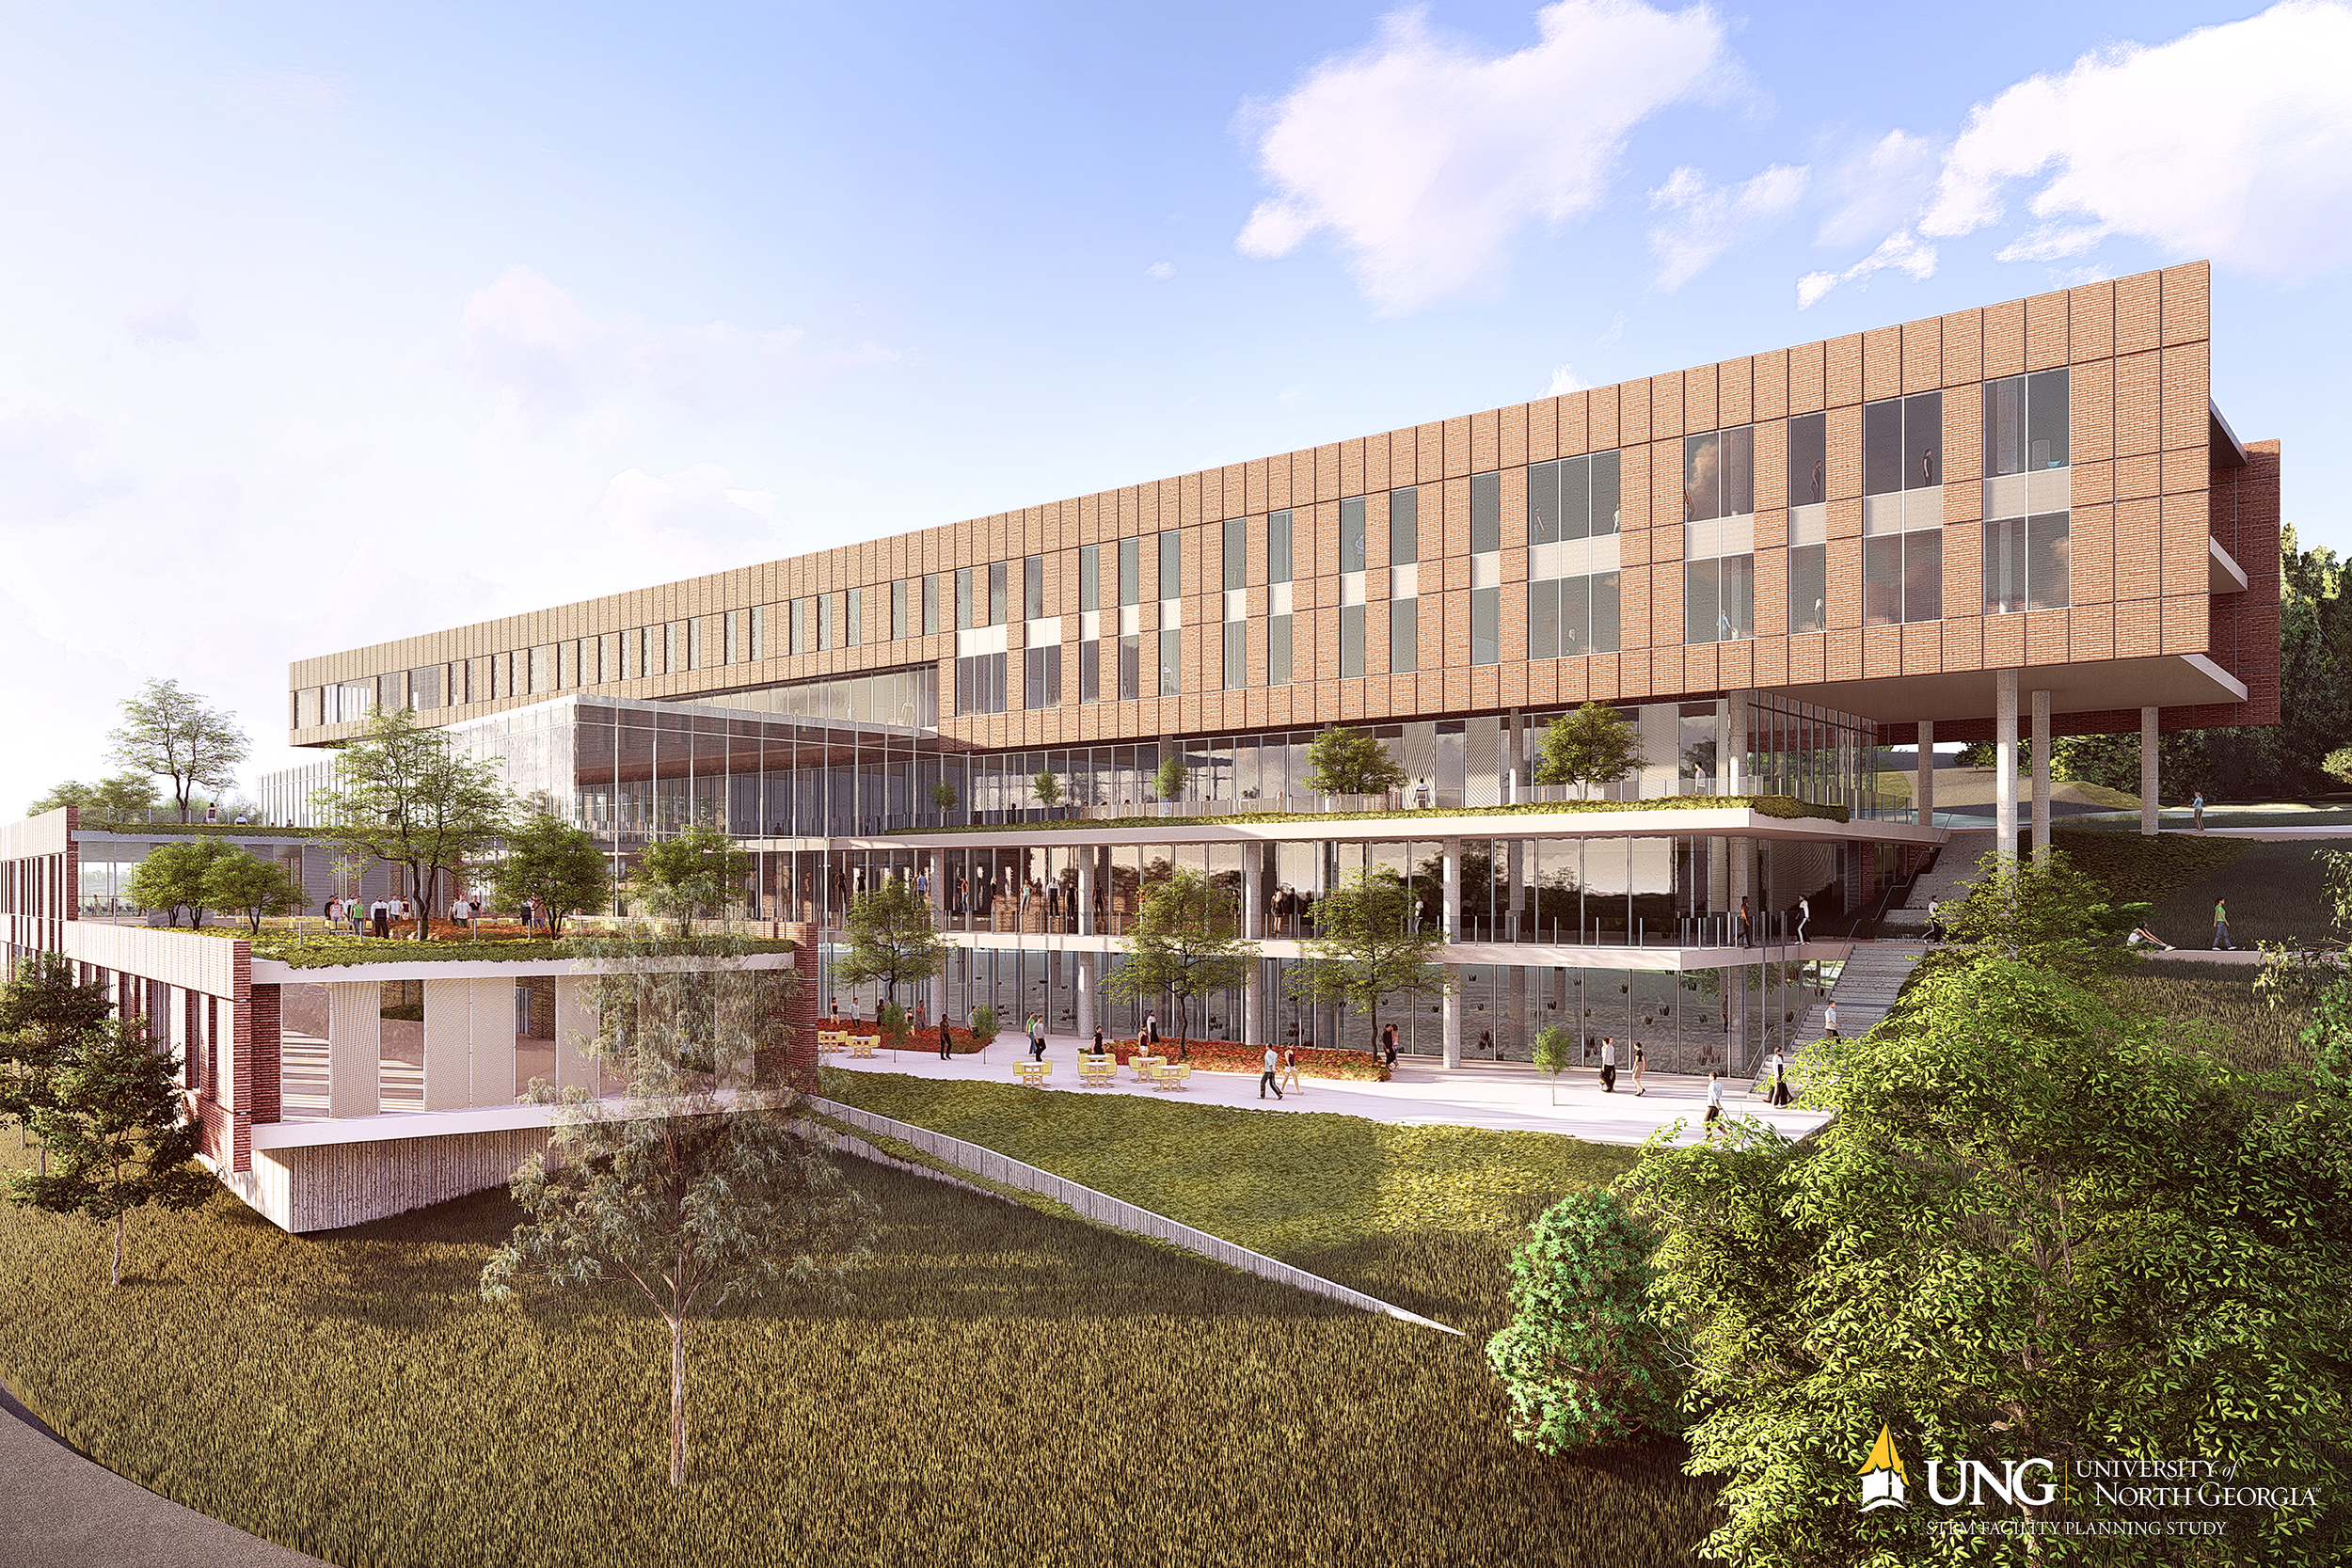 STEM CAMPAIGN - Help UNG raise $40 million to build a state-of-the-art STEM building on the Dahlonega campus and advance transdisciplinary STEM curriculum.